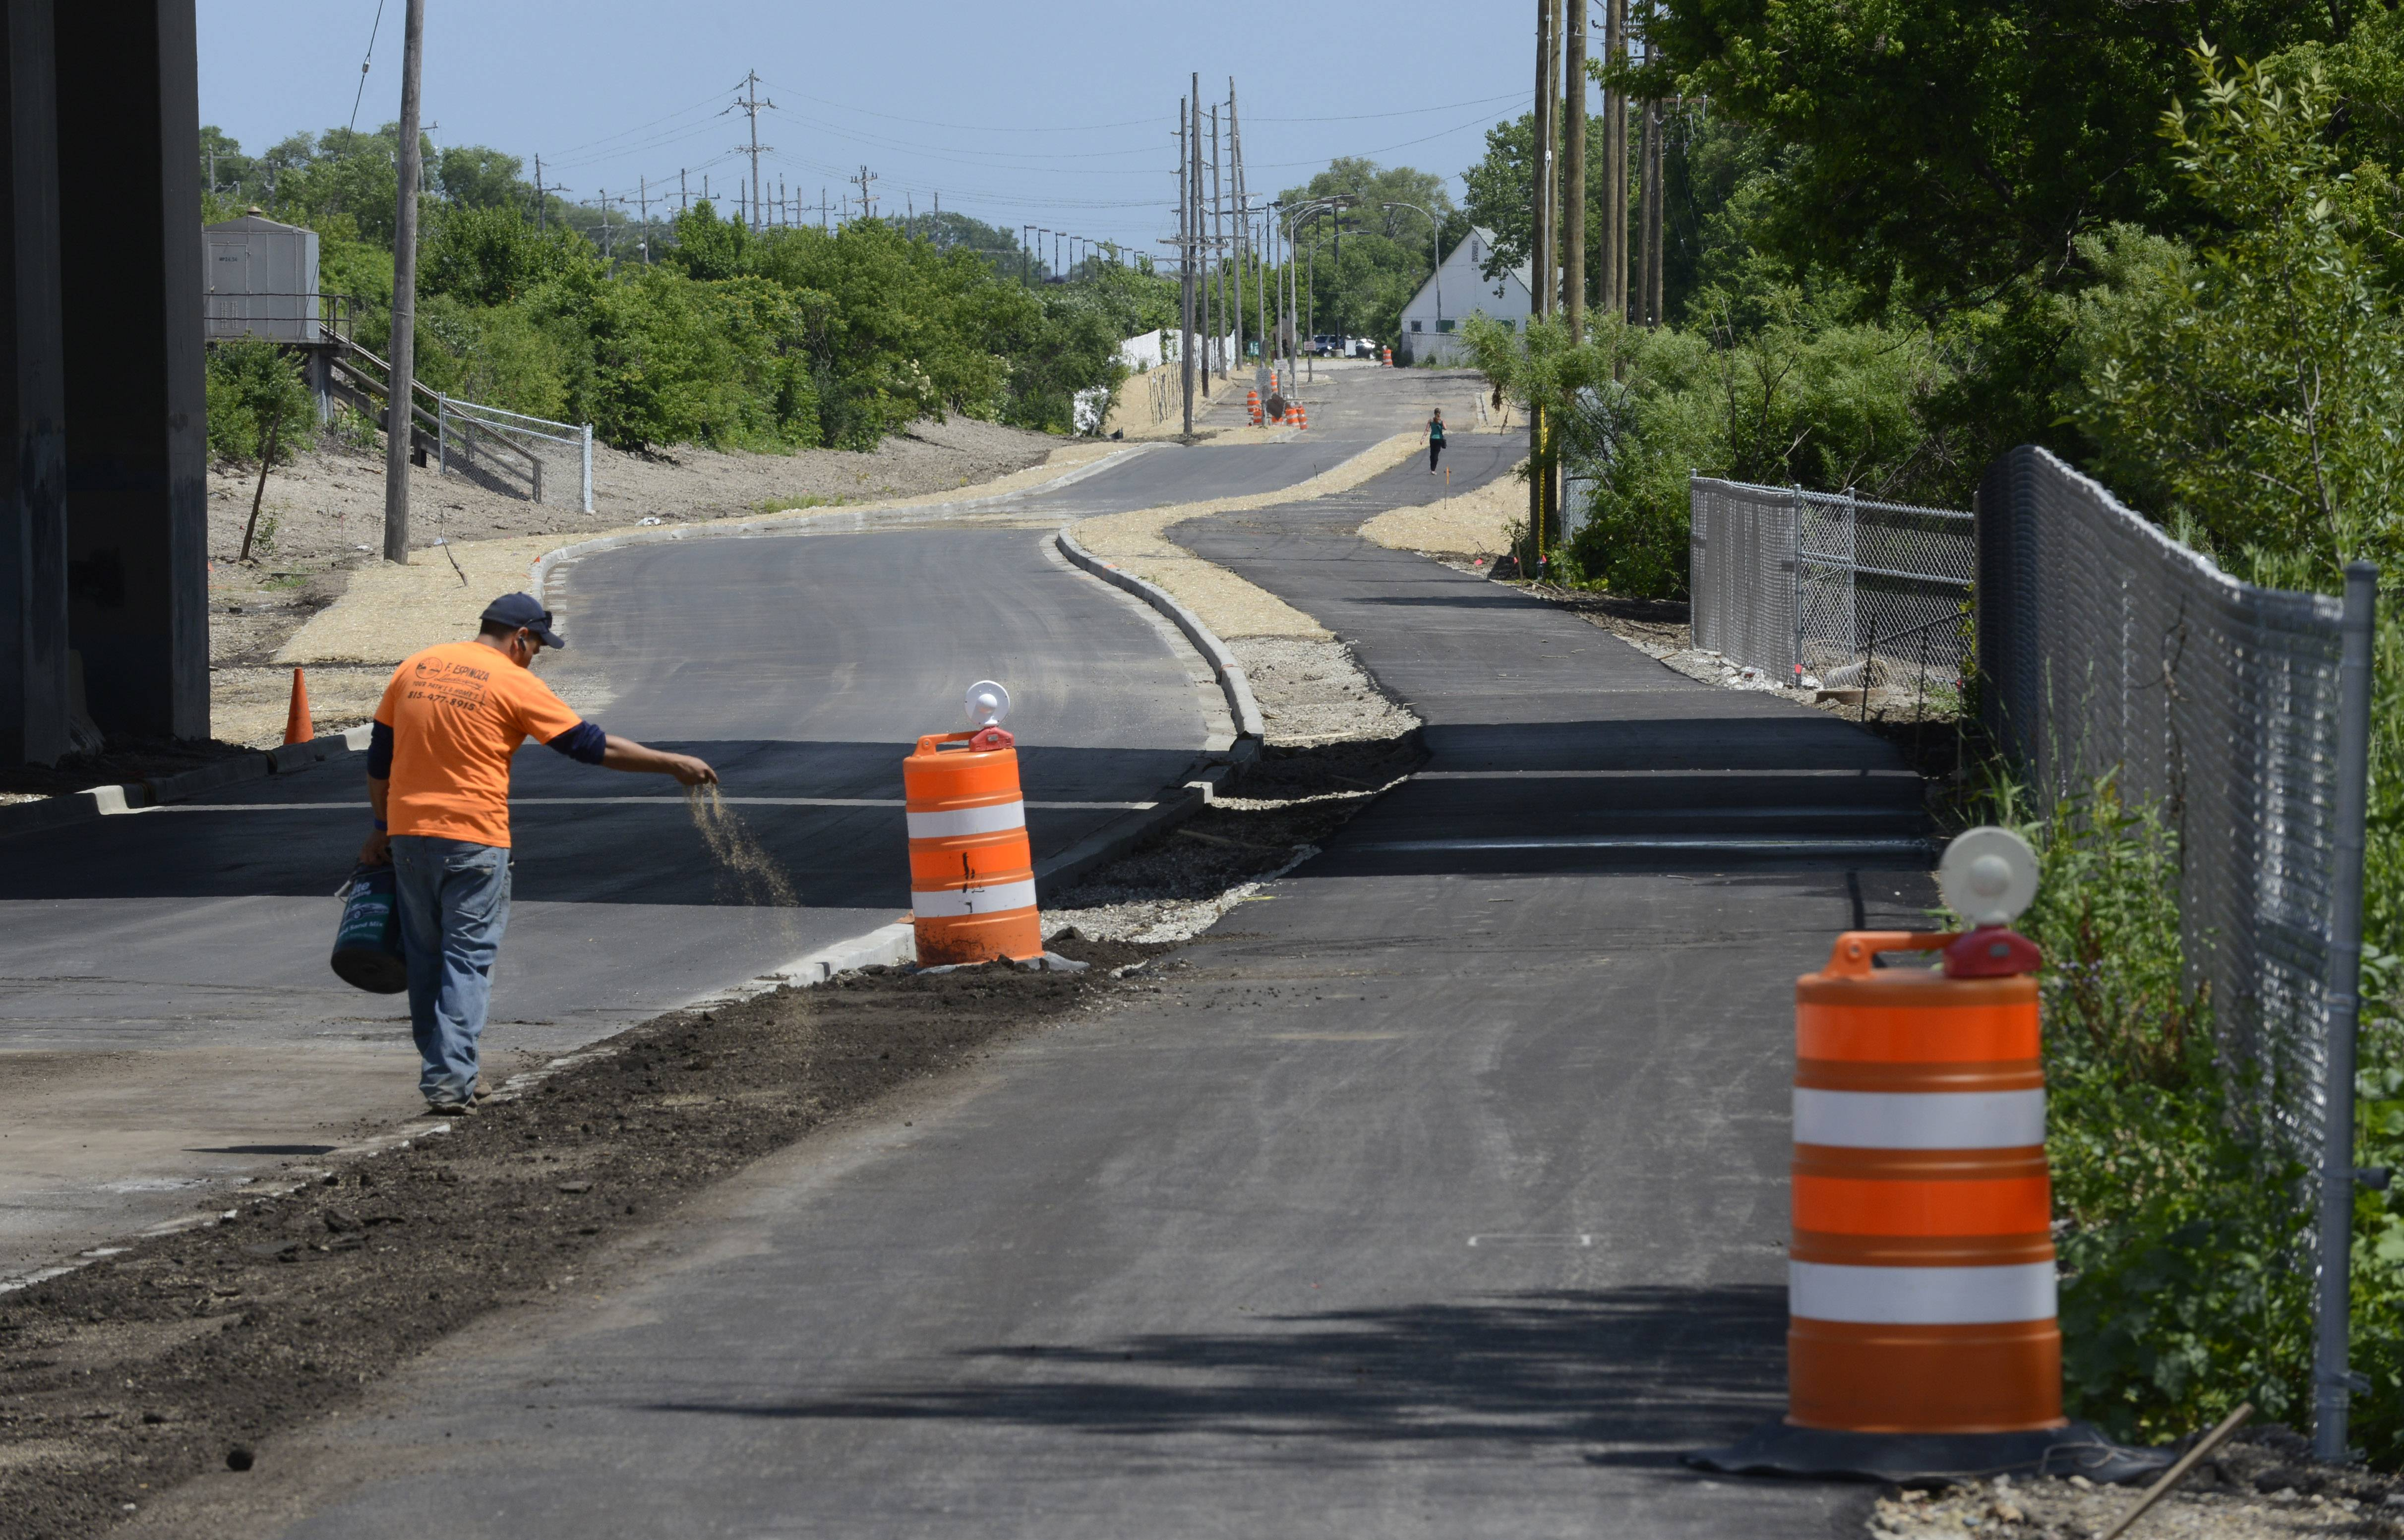 The reconstruction of Commuter Drive, which runs from Rohlwing Road in Rolling Meadows to the Arlington Park Metra station, should be complete next week, officials say. The $1.8 million project was undertaken jointly by Rolling Meadows and Arlington Heights.